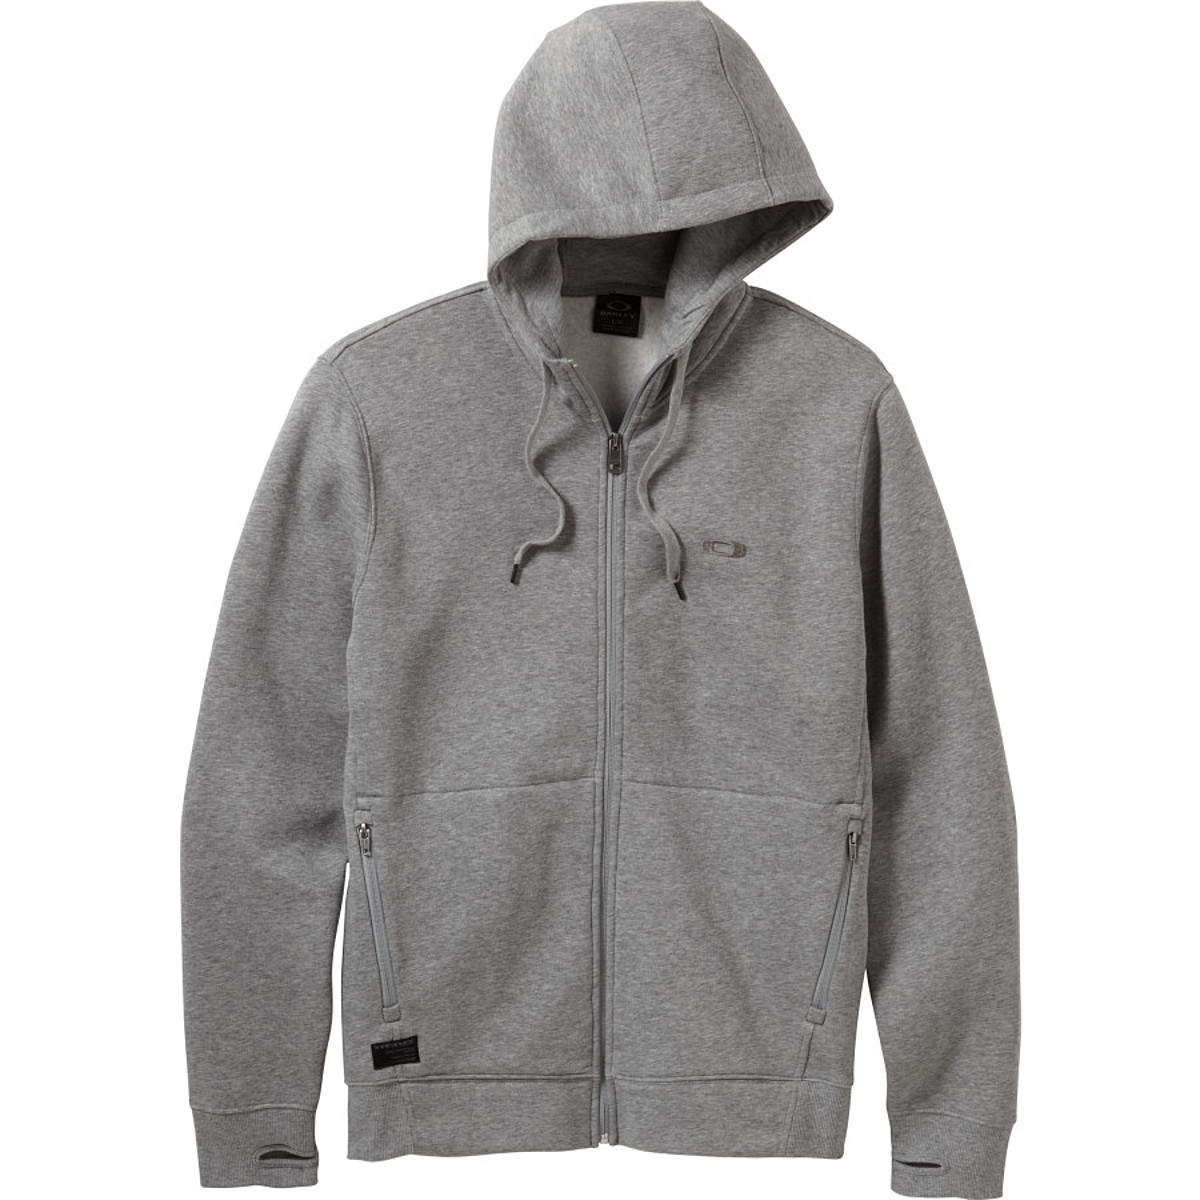 Oakley Protection Full Zip Hoodie